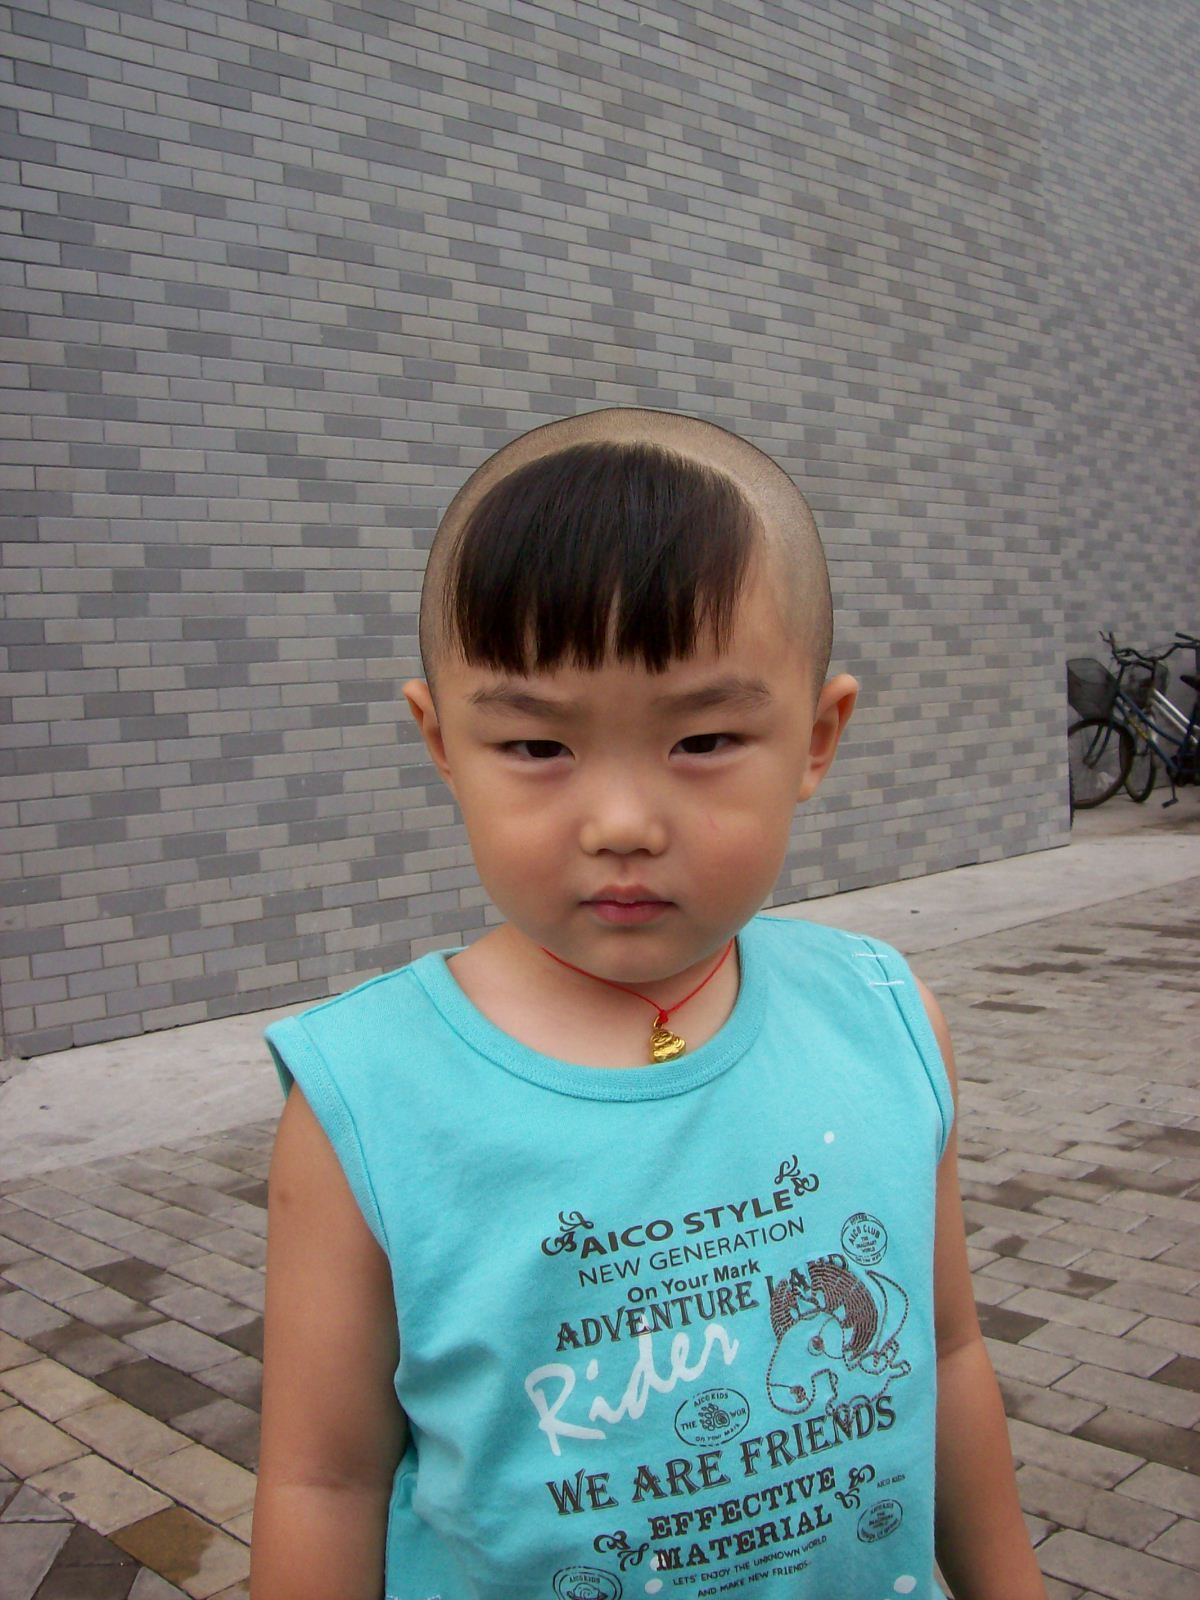 Young Boys Haircut In Chinayou Cant See The Tiny Pigtail